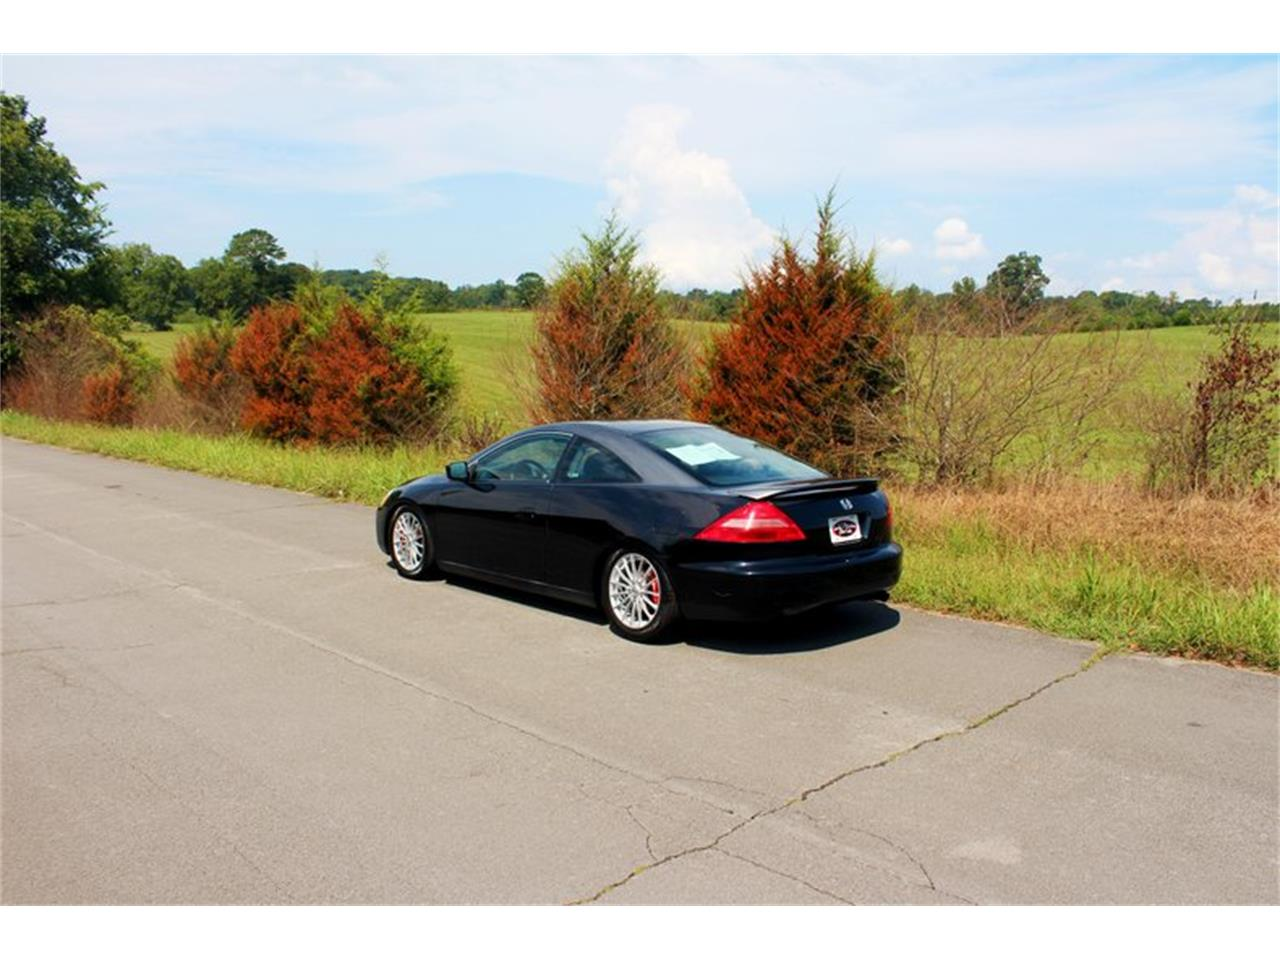 Large Picture of '04 Honda Accord located in Tennessee Offered by Smoky Mountain Traders - OH0M